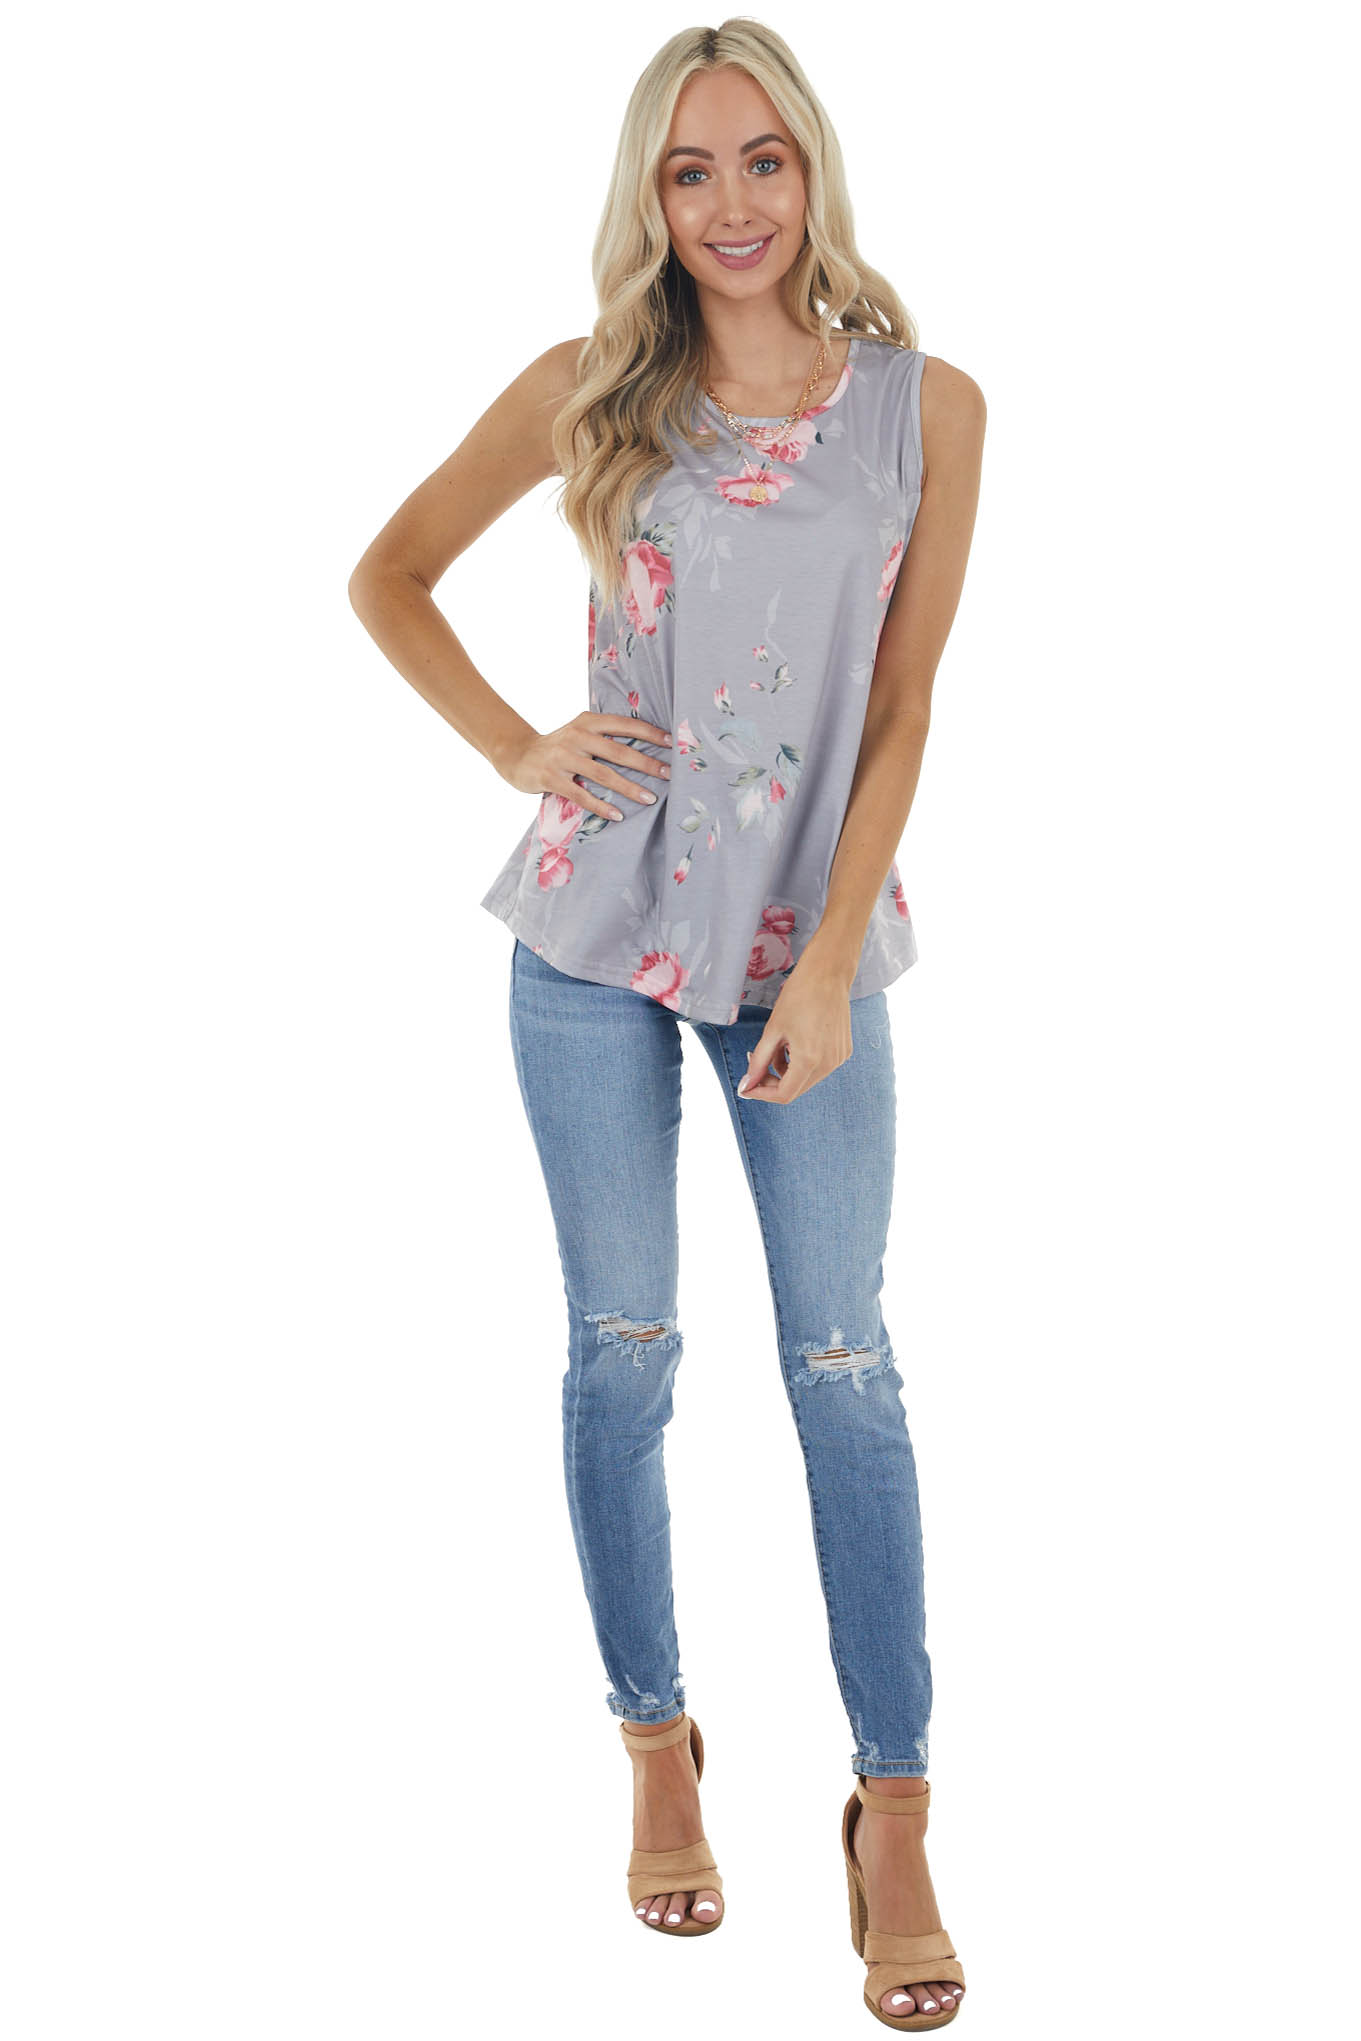 Heather Grey Floral Print Soft Tank Top with Rounded Neck